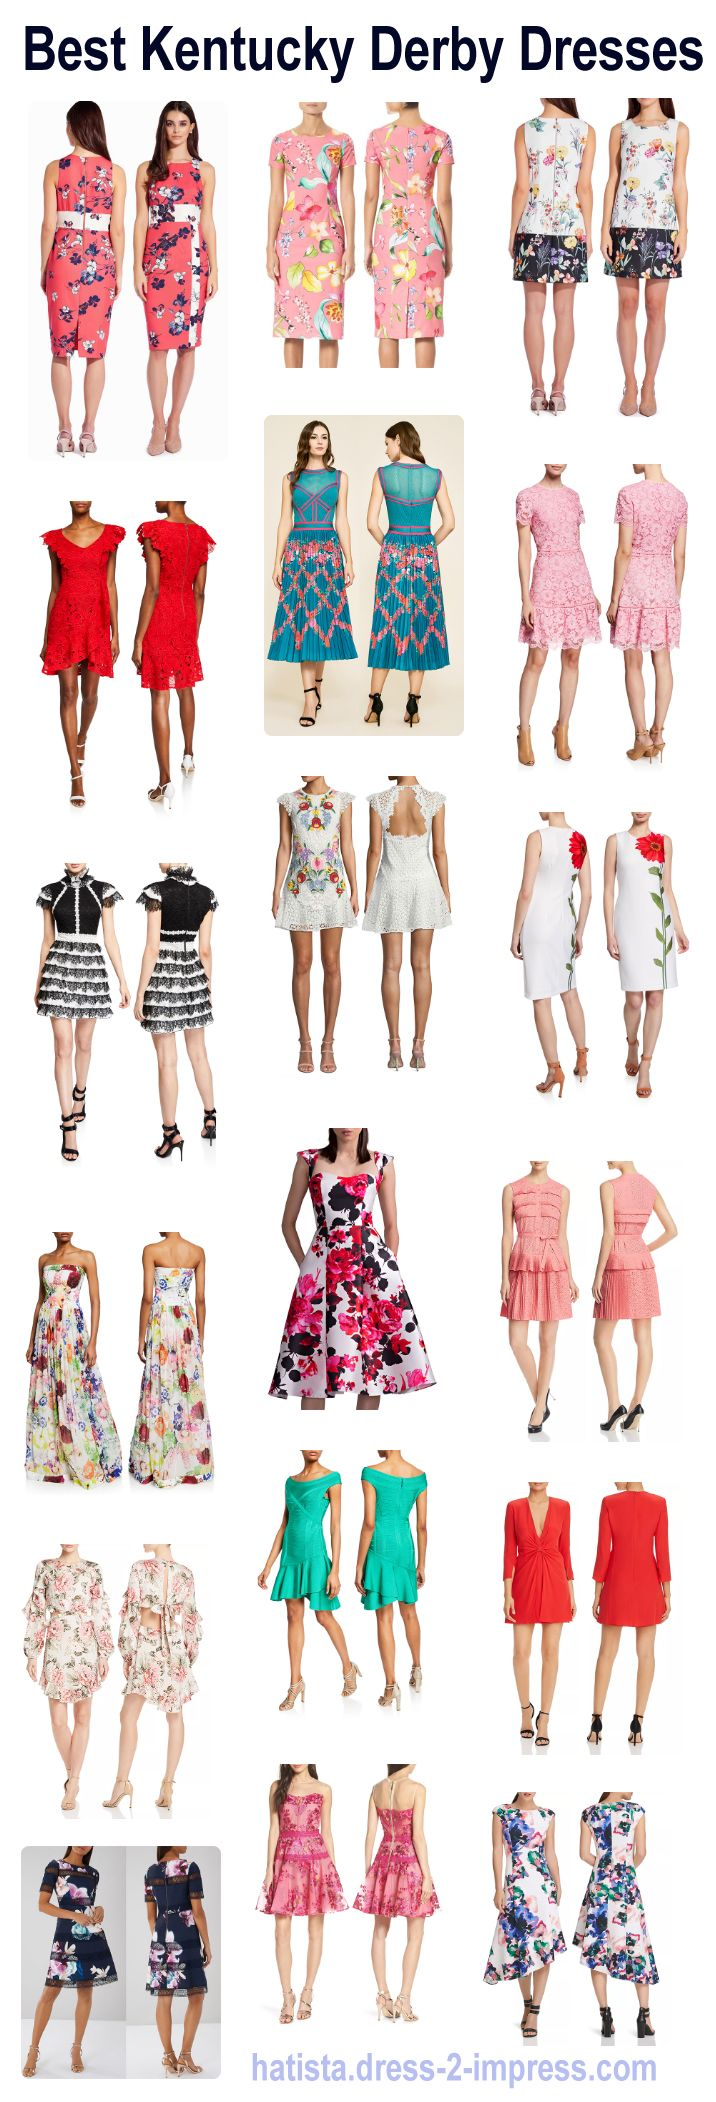 Kentucky Derby 2020 Fashion.Looking For The Best Kentucky Derby Dresses Read Blog With